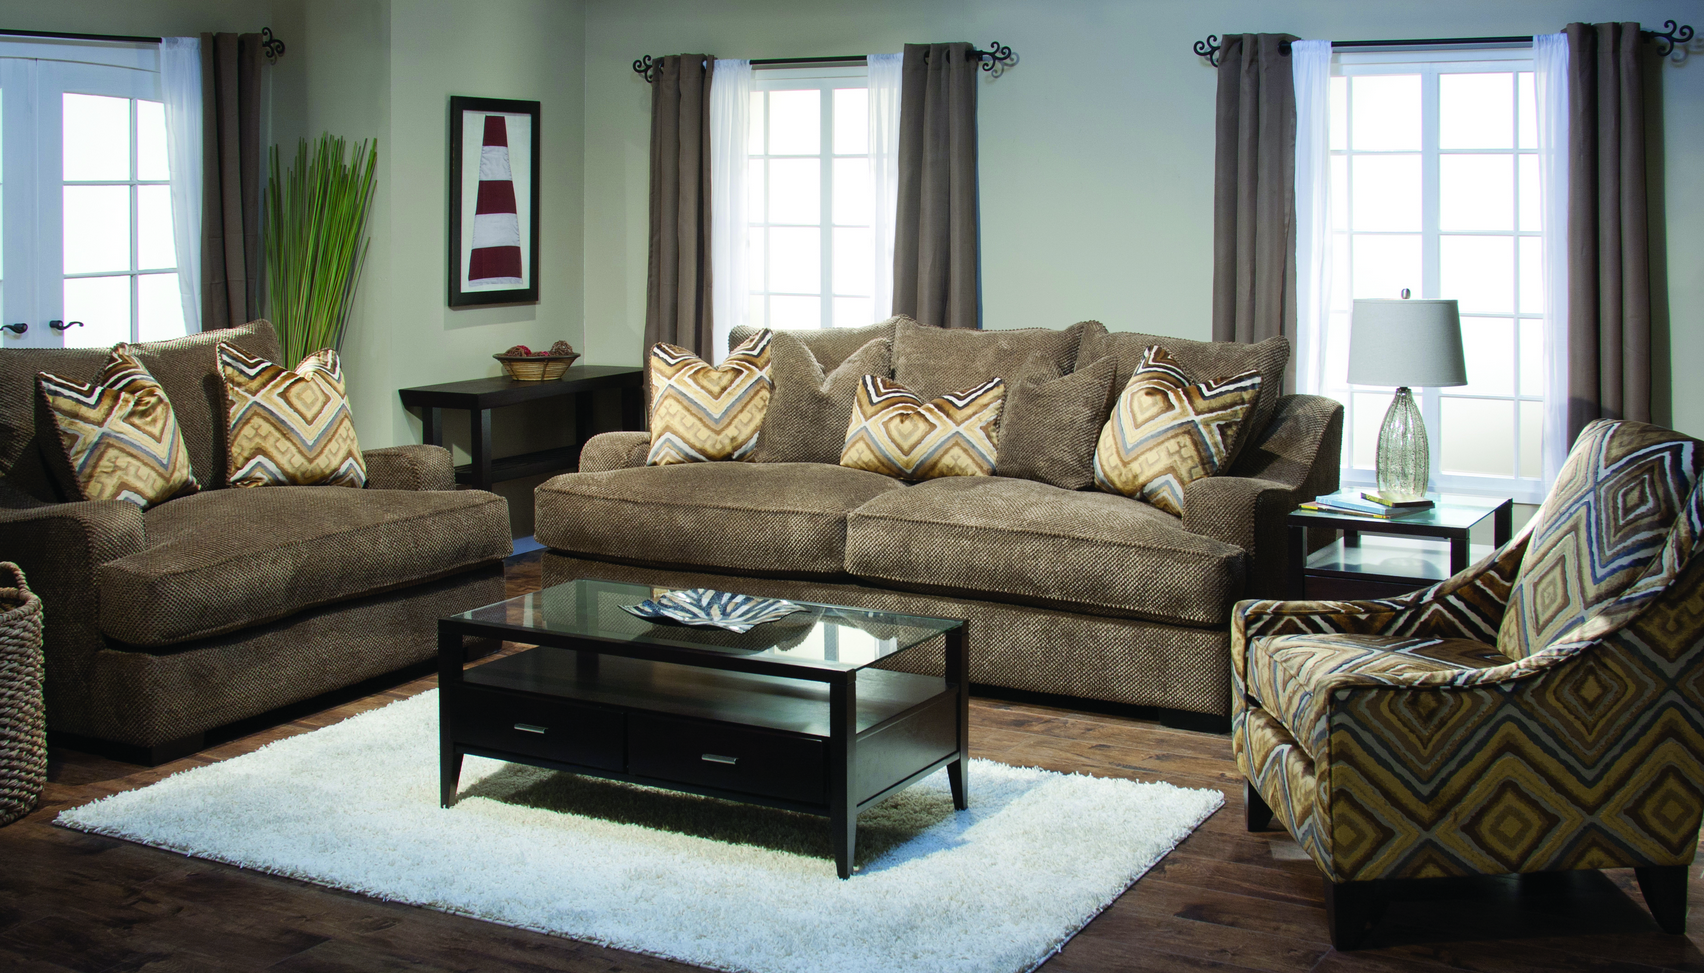 contemporary furniture styles. Our Spartan Living Room Set Beautifully Blends Traditional And Contemporary Furniture Styles. Styles N